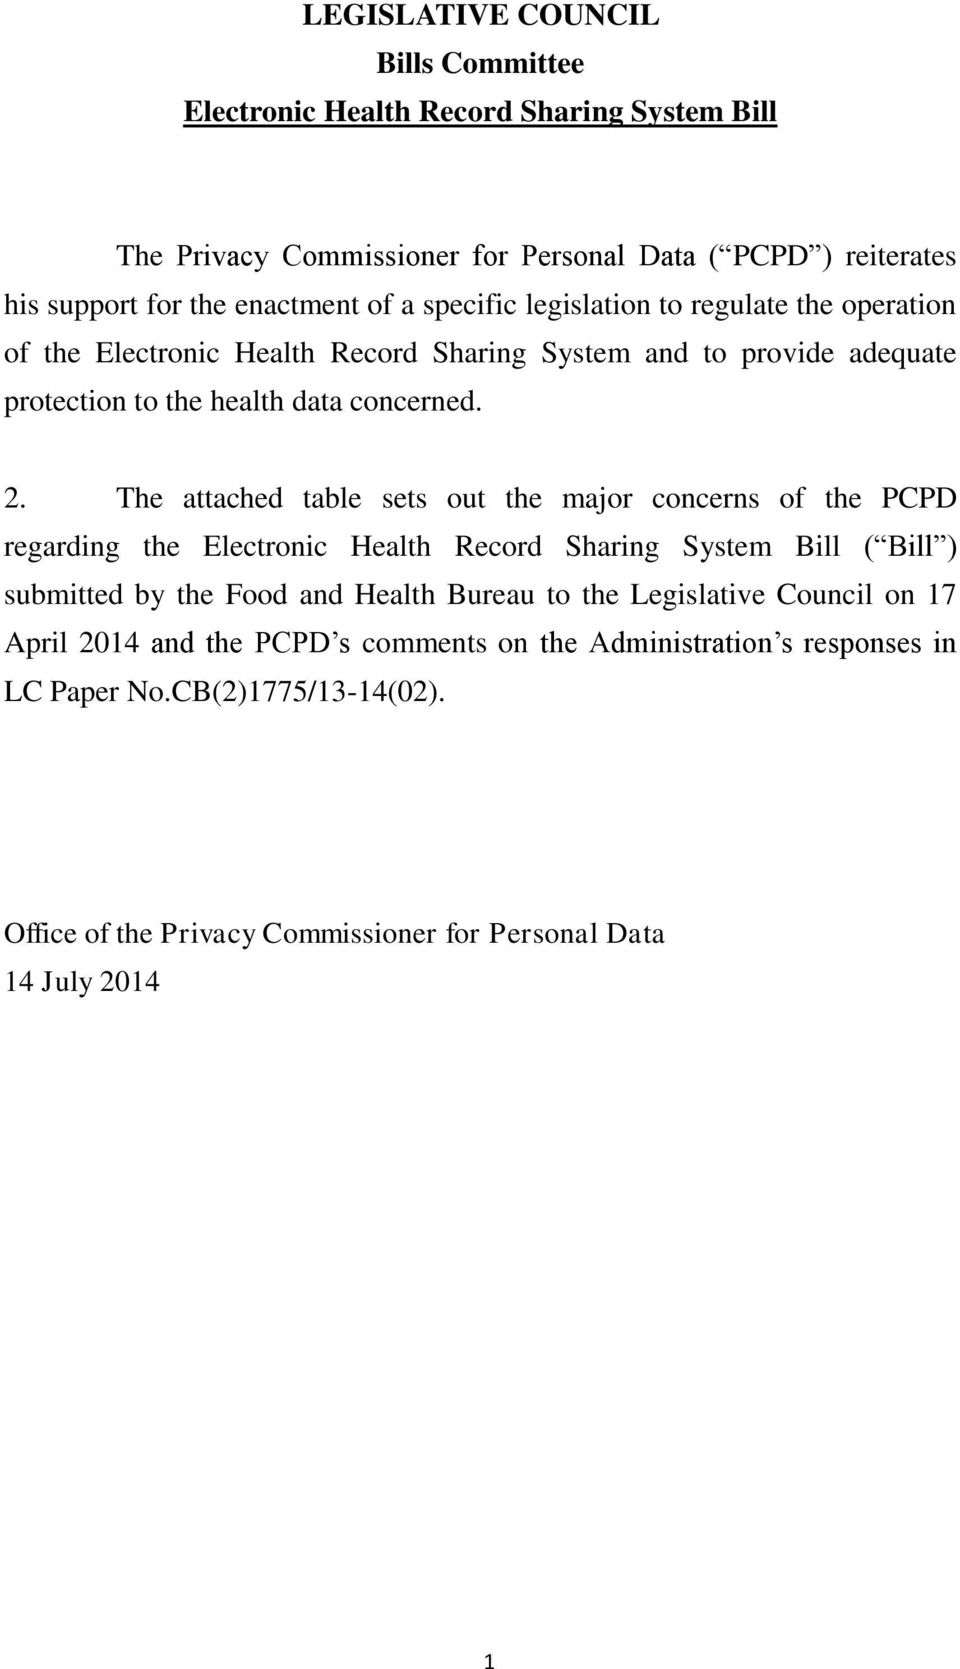 The attached table sets out the major concerns of the PCPD regarding the Electronic Health Record Sharing System Bill ( Bill ) submitted by the Food and Health Bureau to the